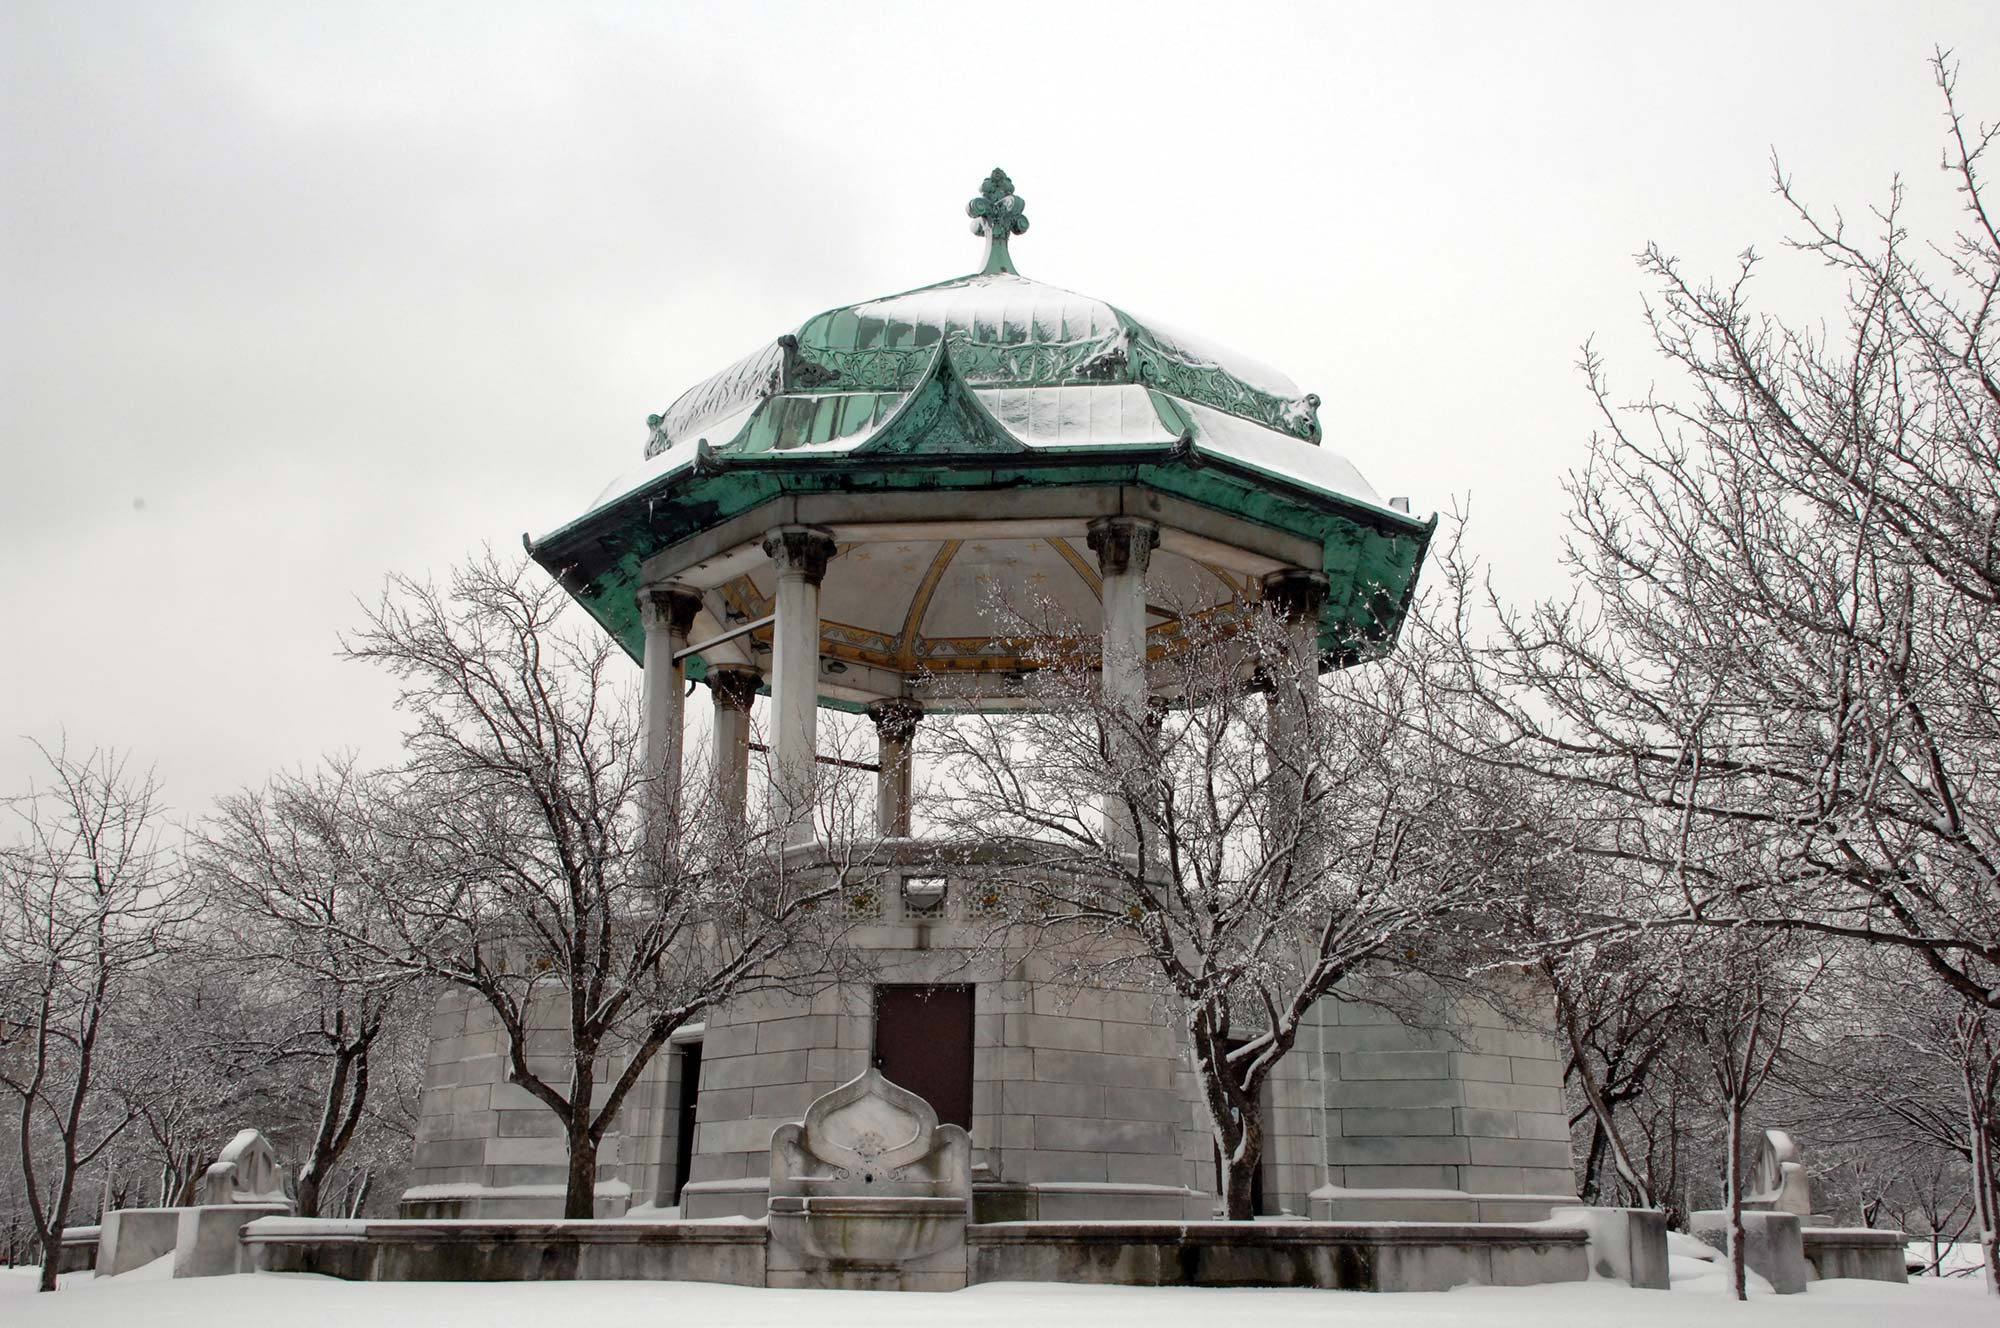 Garfield Park's Bandstand, designed by Joseph L. Silsbee remains intact today, 2007